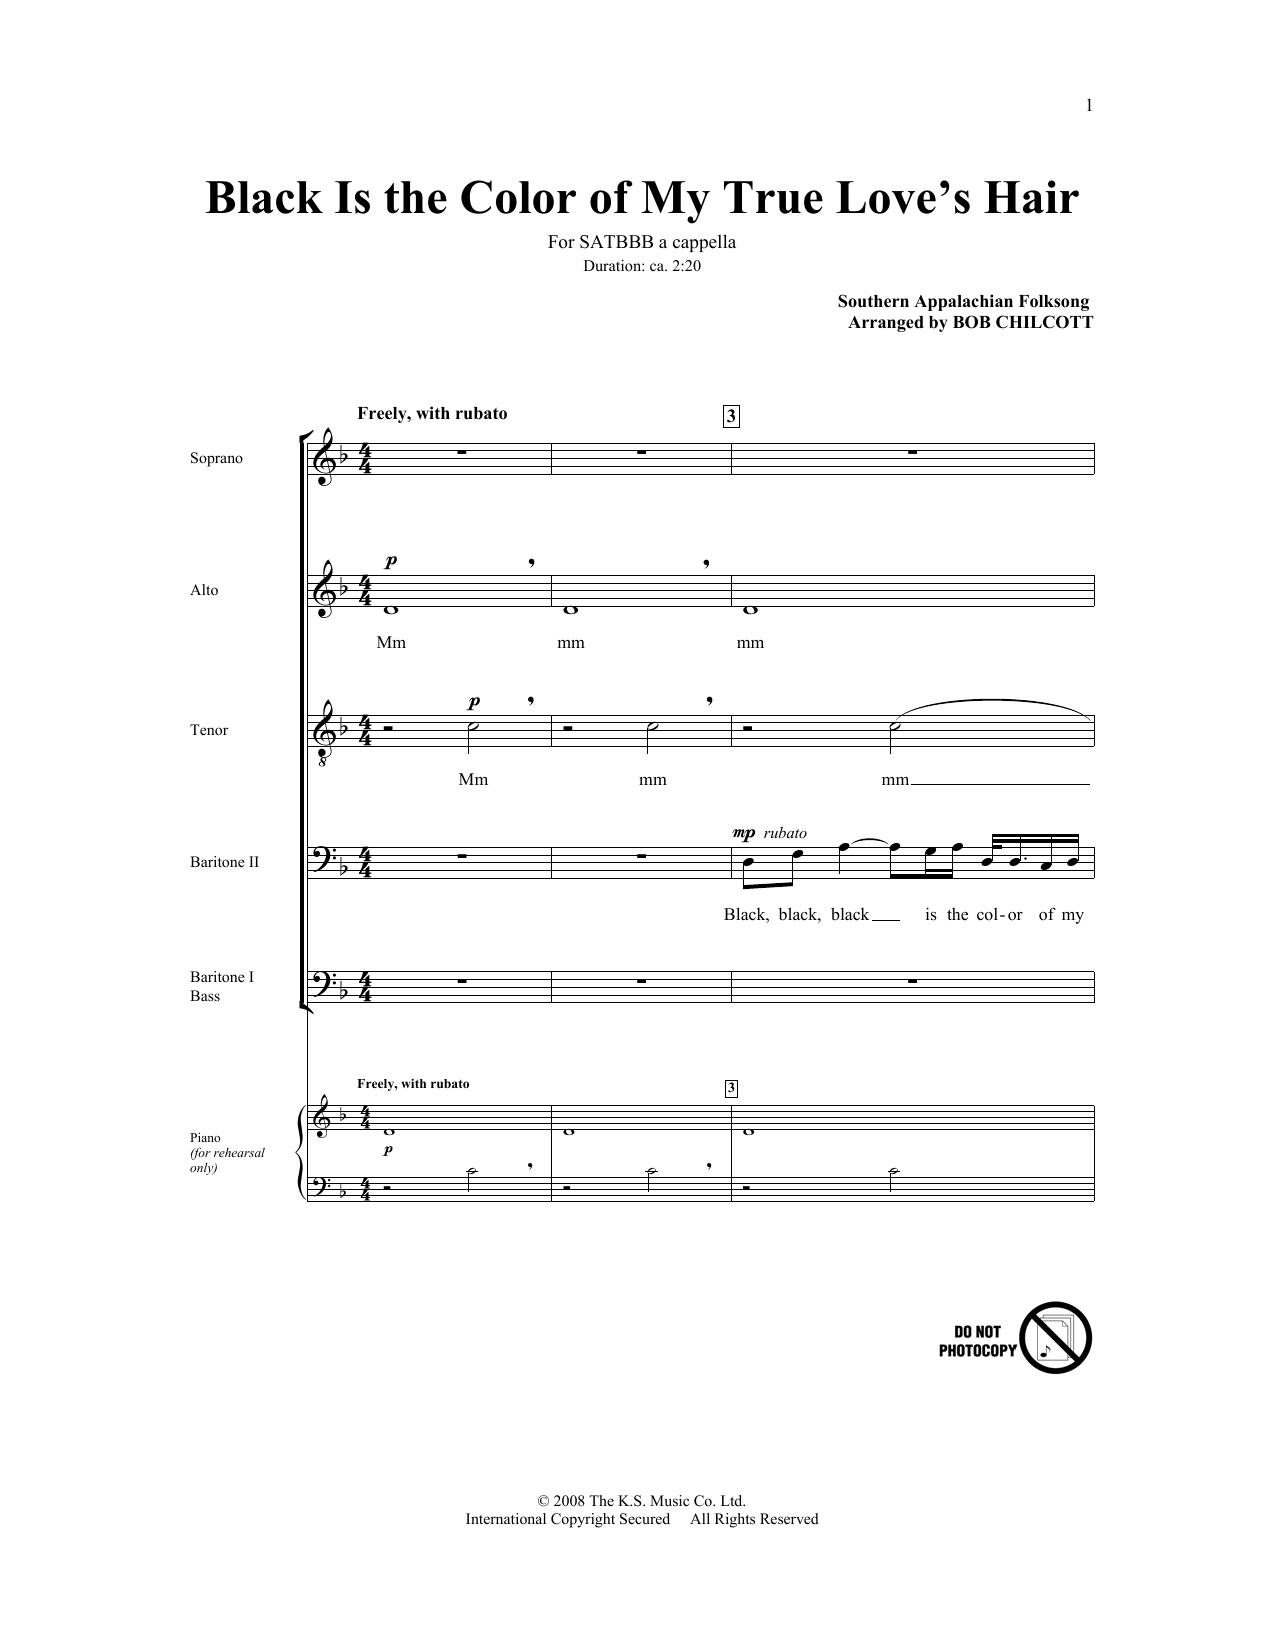 Black Is The Color Of My True Love's Hair Sheet Music